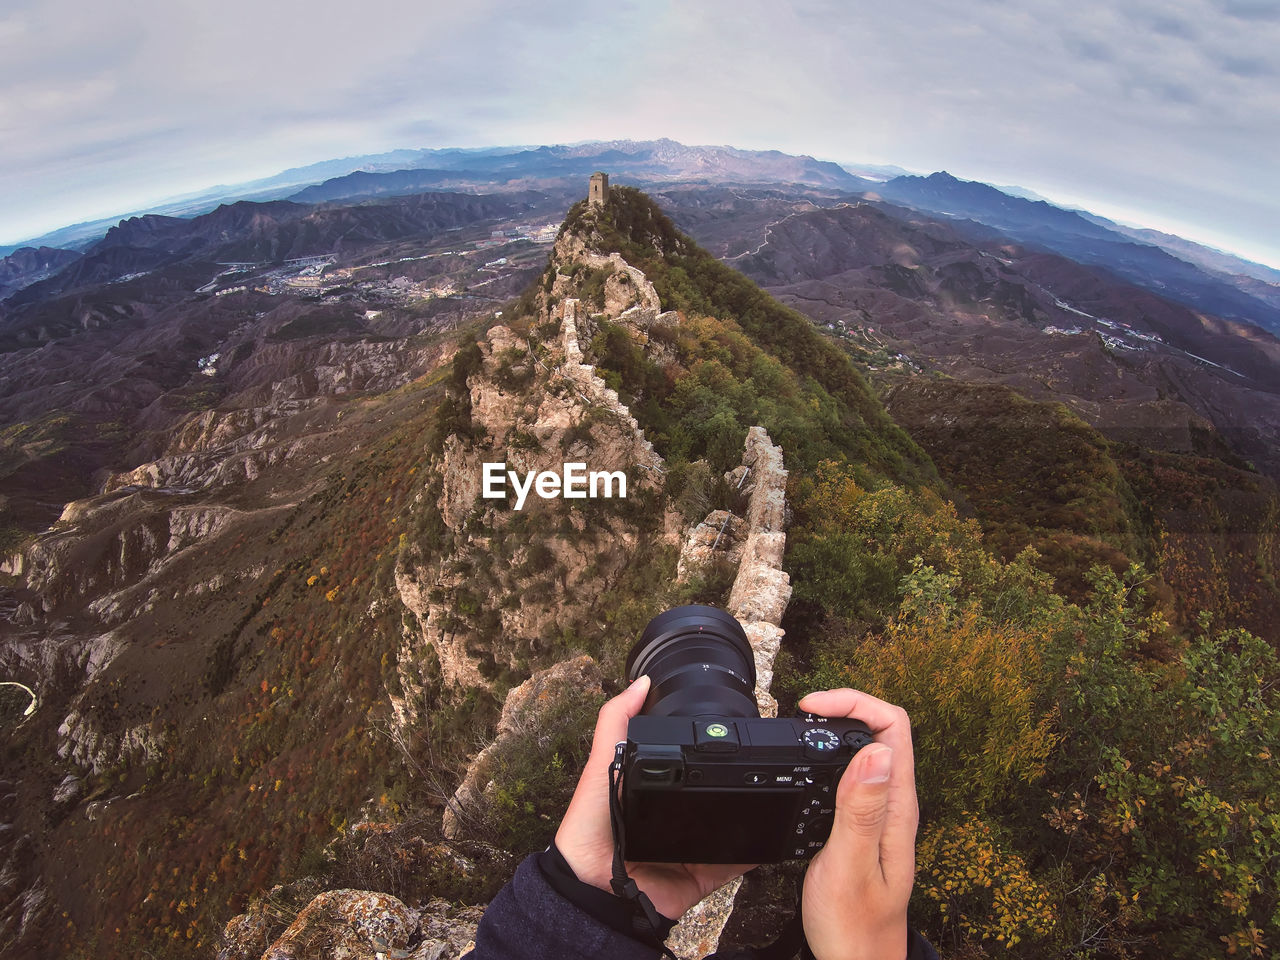 Cropped image of man photographing mountain with camera against sky